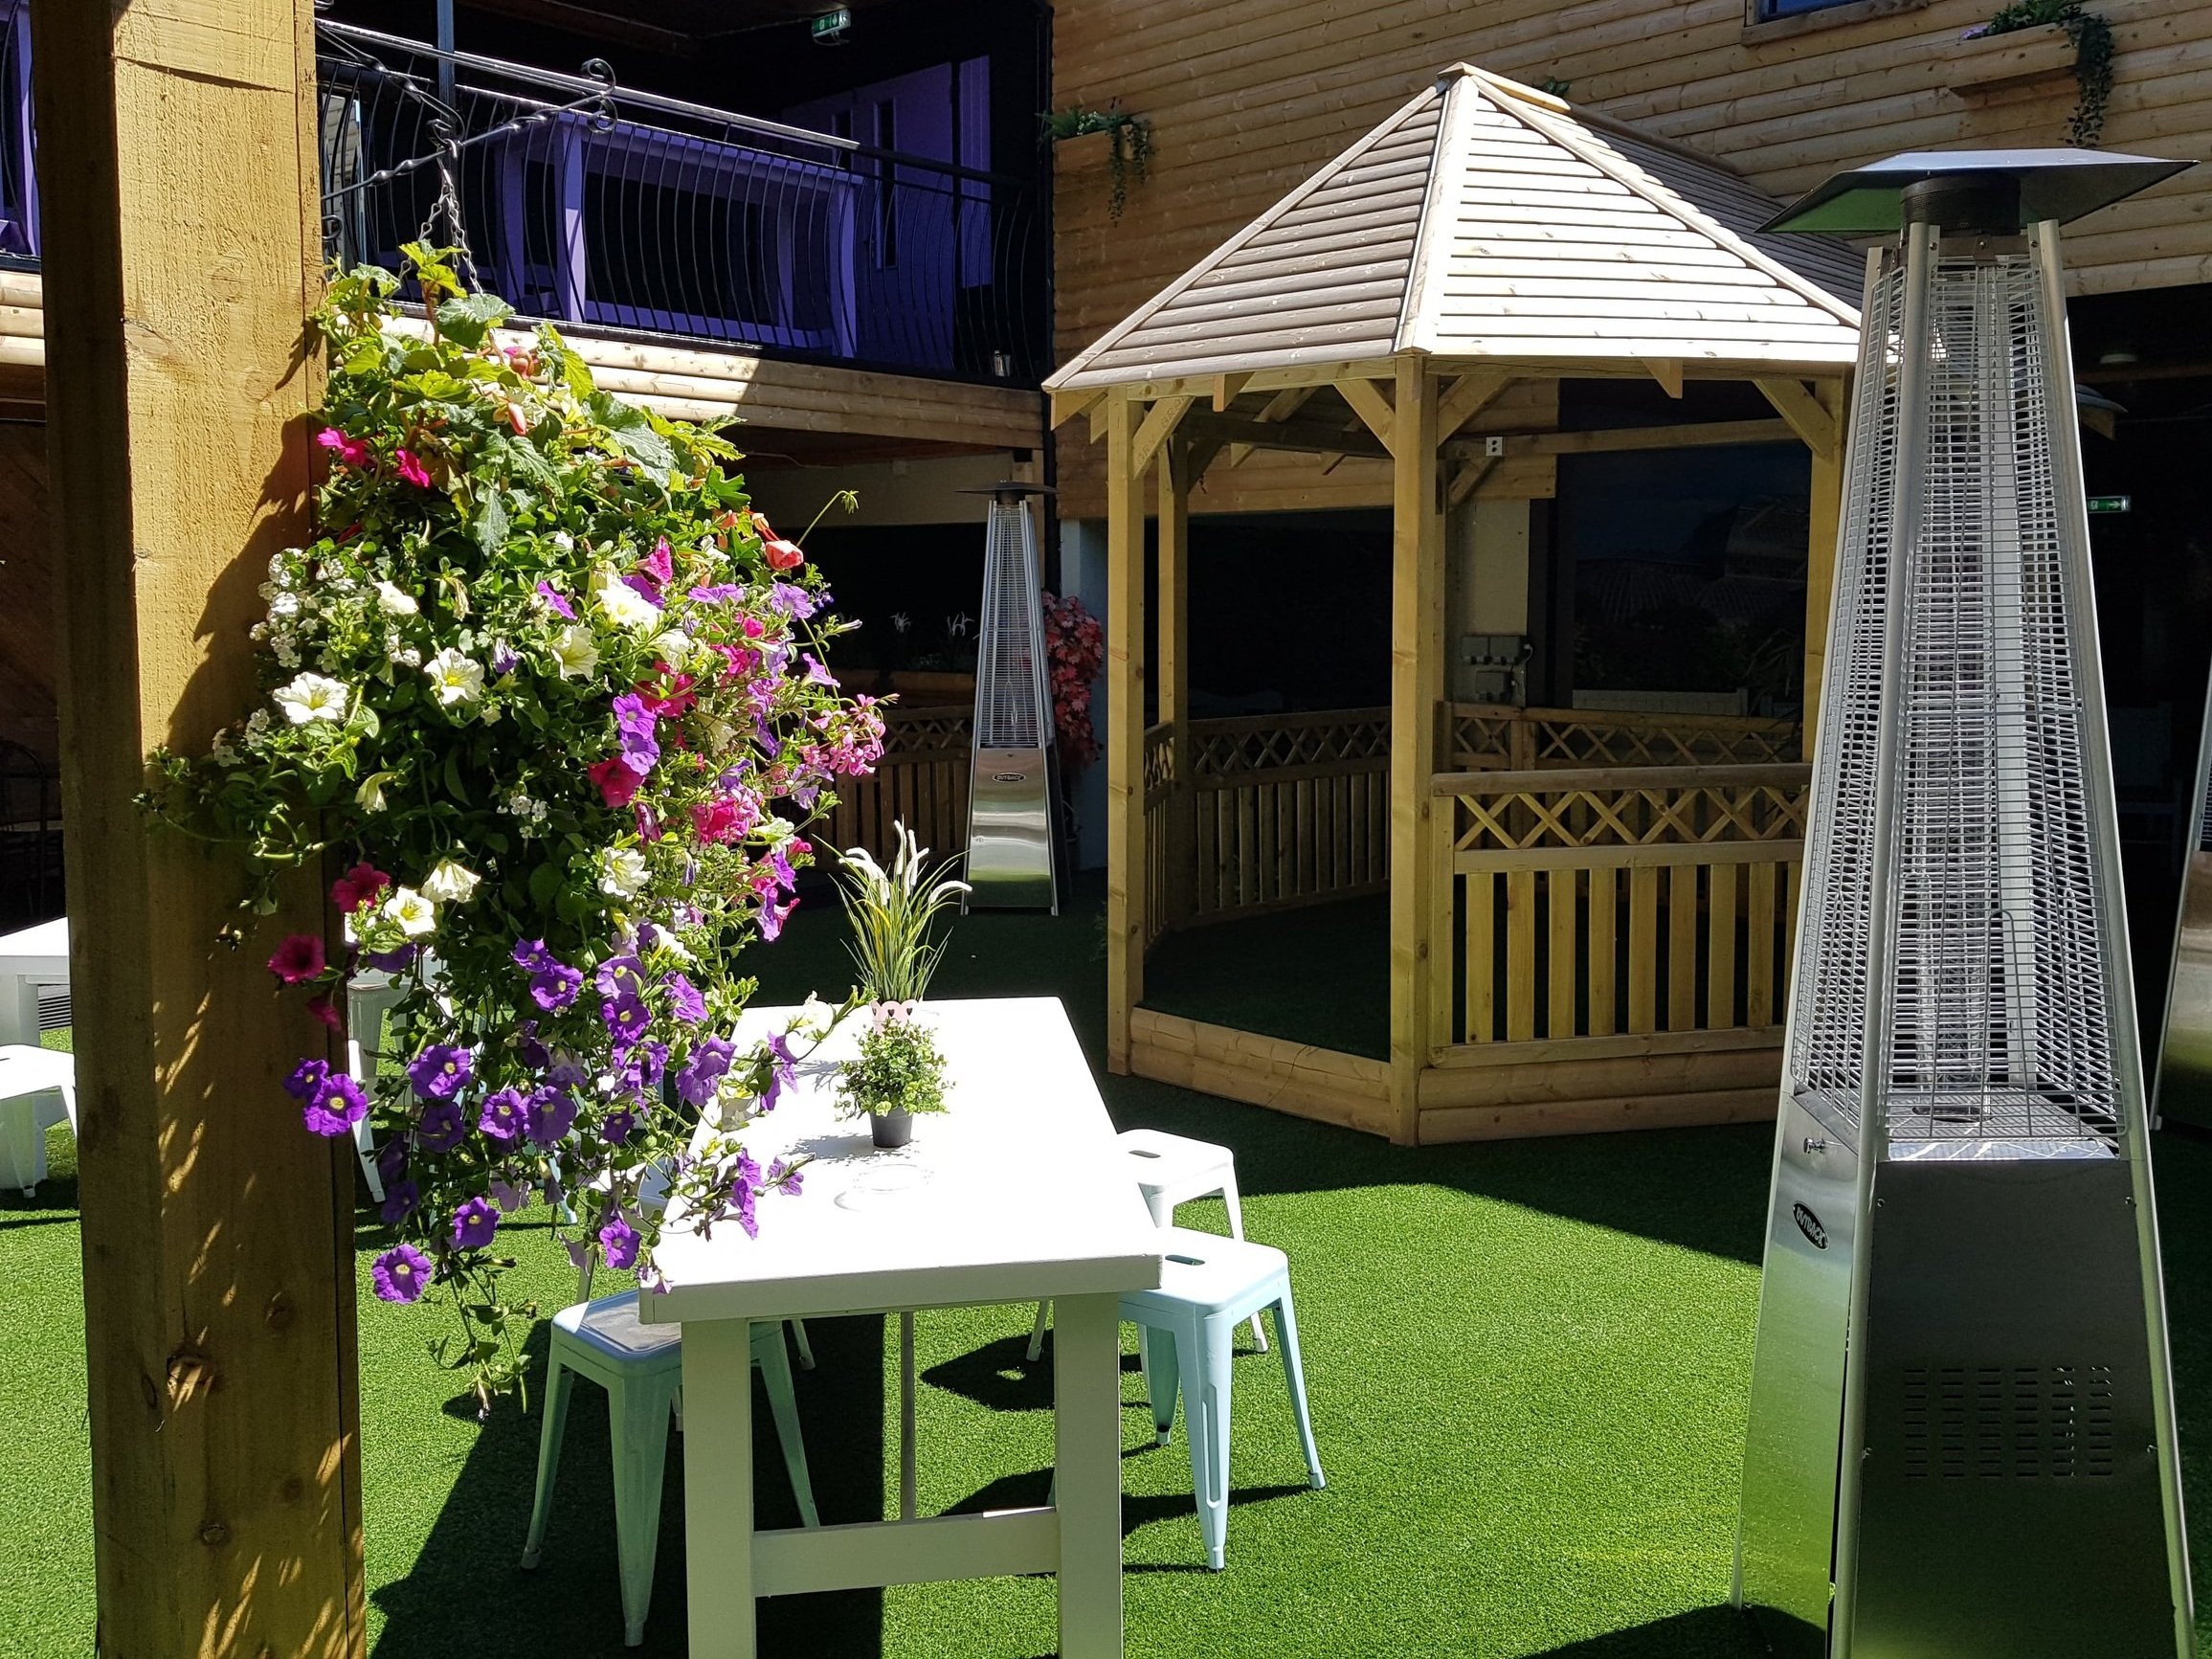 The Garden - Our garden is the perfect chill out area on a sunny afternoon. On weekends our garden comes alive with live music performances from local musicians Friday through to Sunday evening and on Saturday & Bank holiday Sundays DJ playing party anthems from 9pm til late.